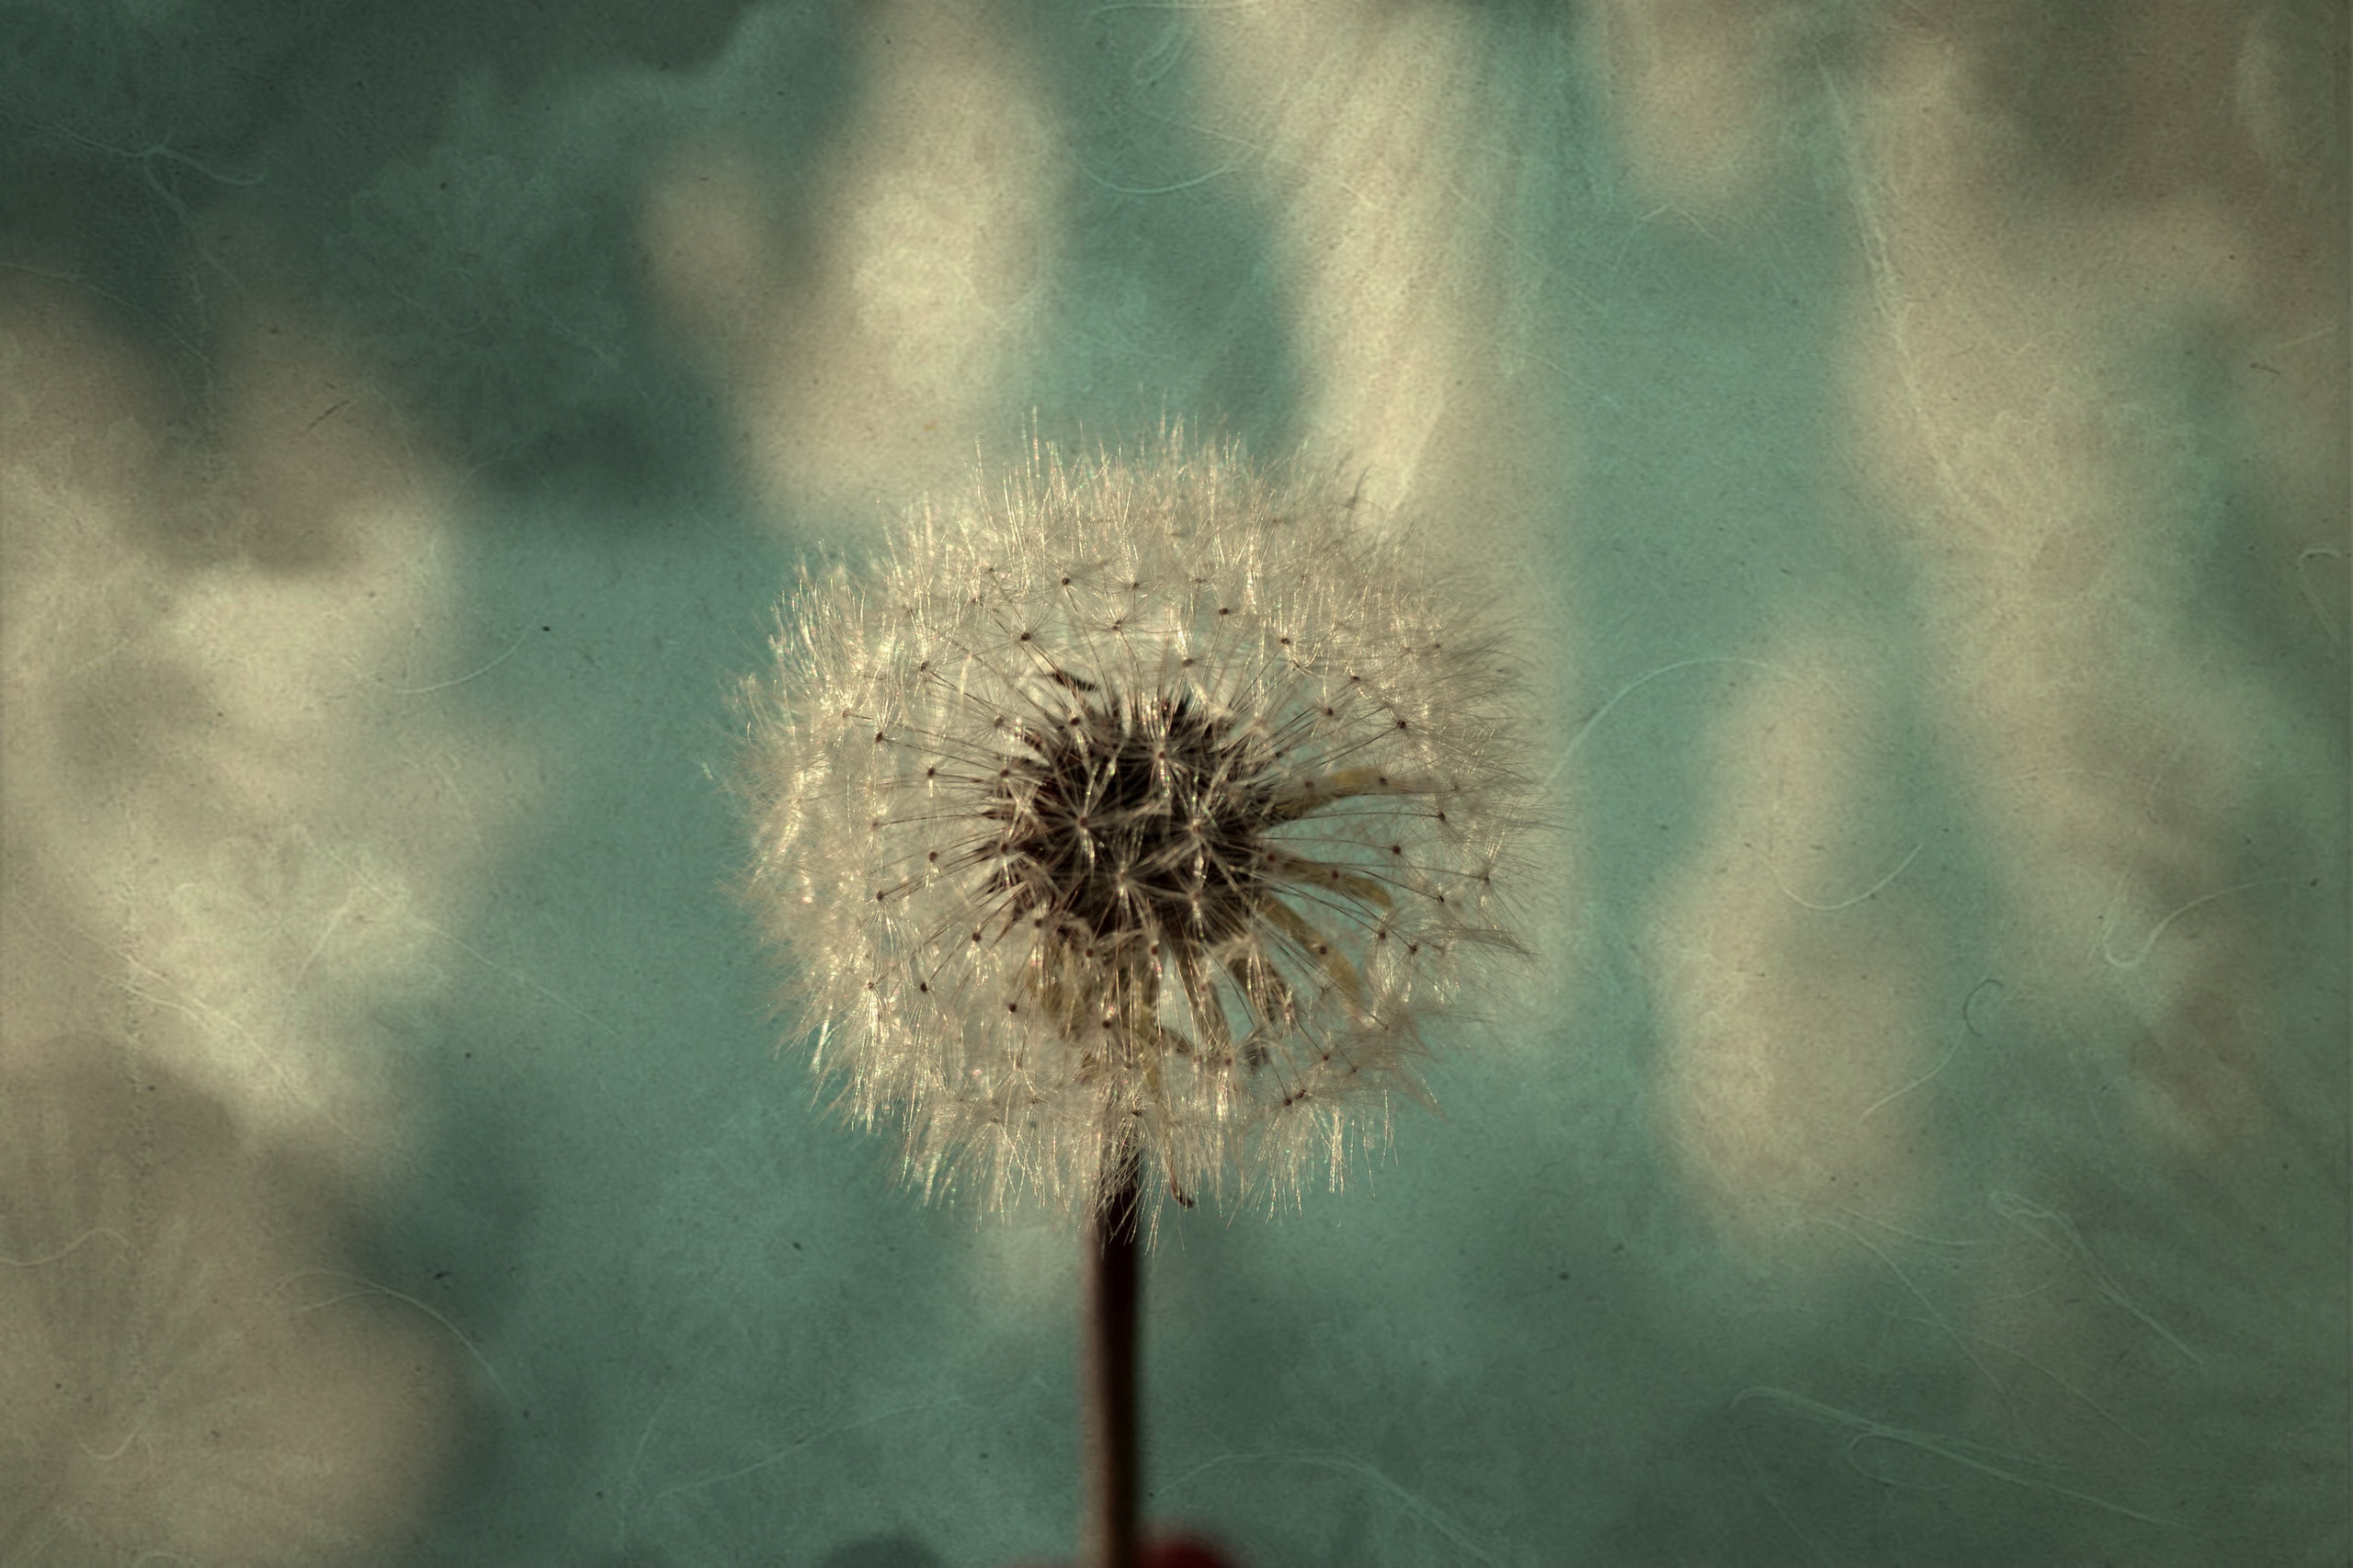 105 best Dandelions for Danielion images on Pinterest | Dandelions,  Dandelion art and Art pictures